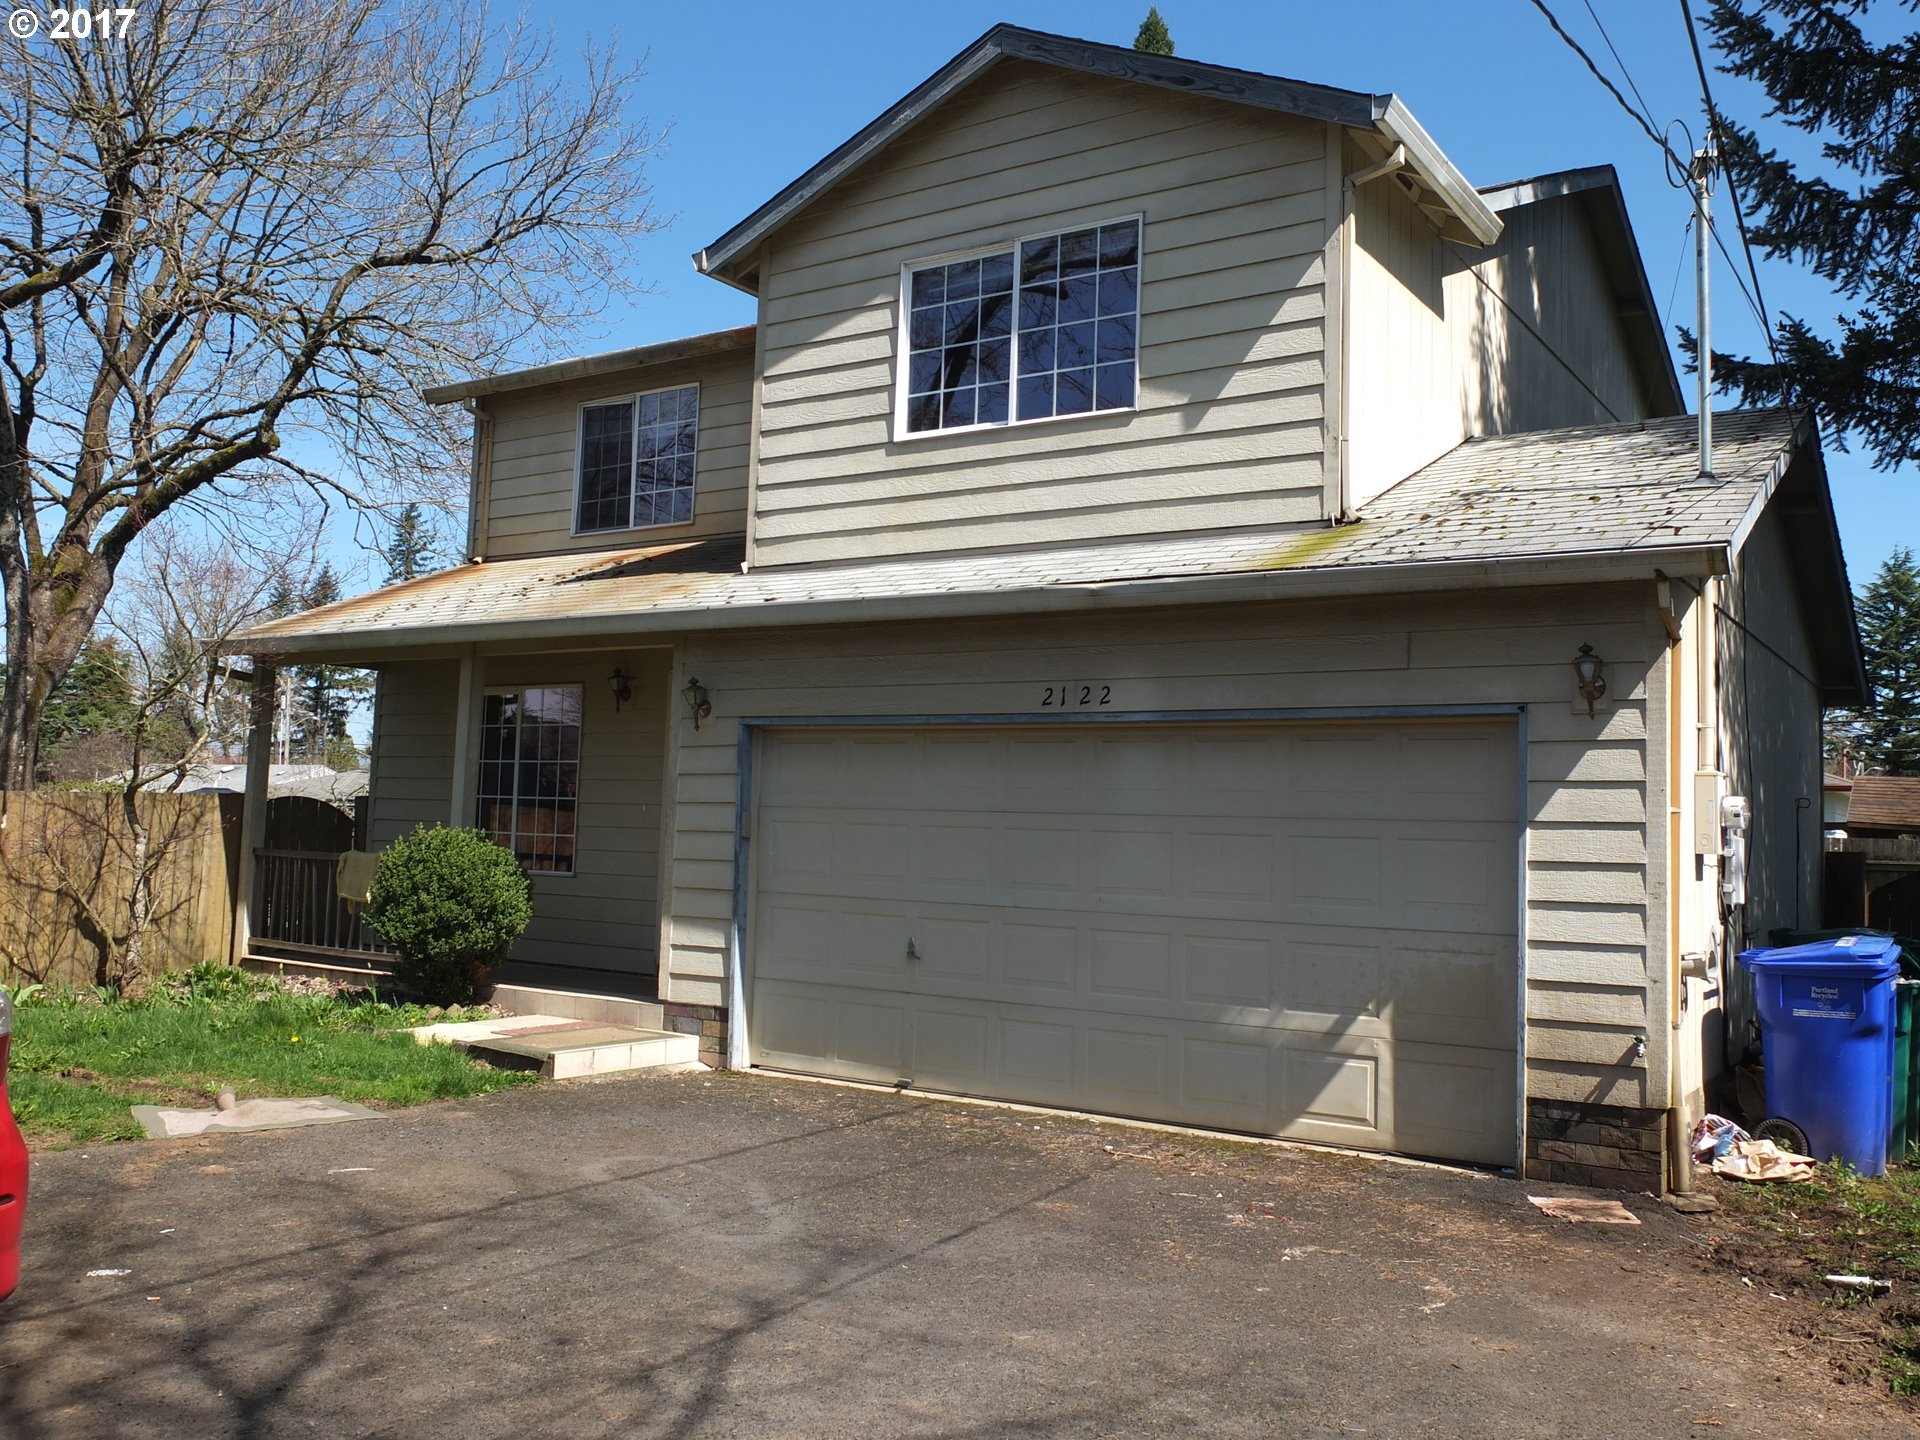 1408 sq. ft 4 bedrooms 3 bathrooms  House ,Portland, OR